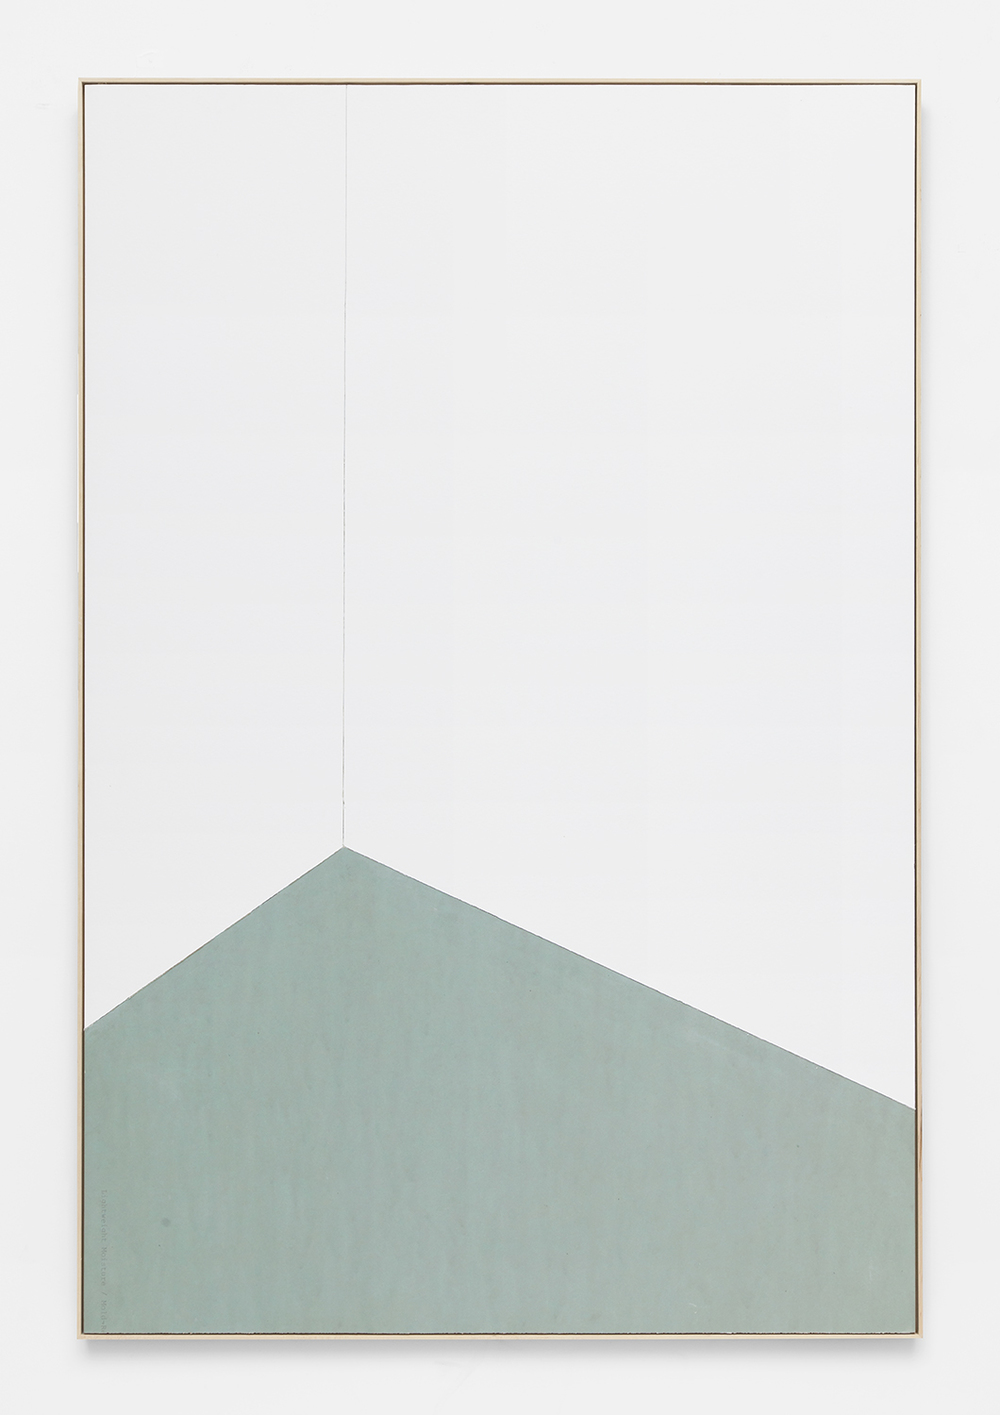 Imported Materials, 2015 Drywall in artist frame 72 x 48 inches